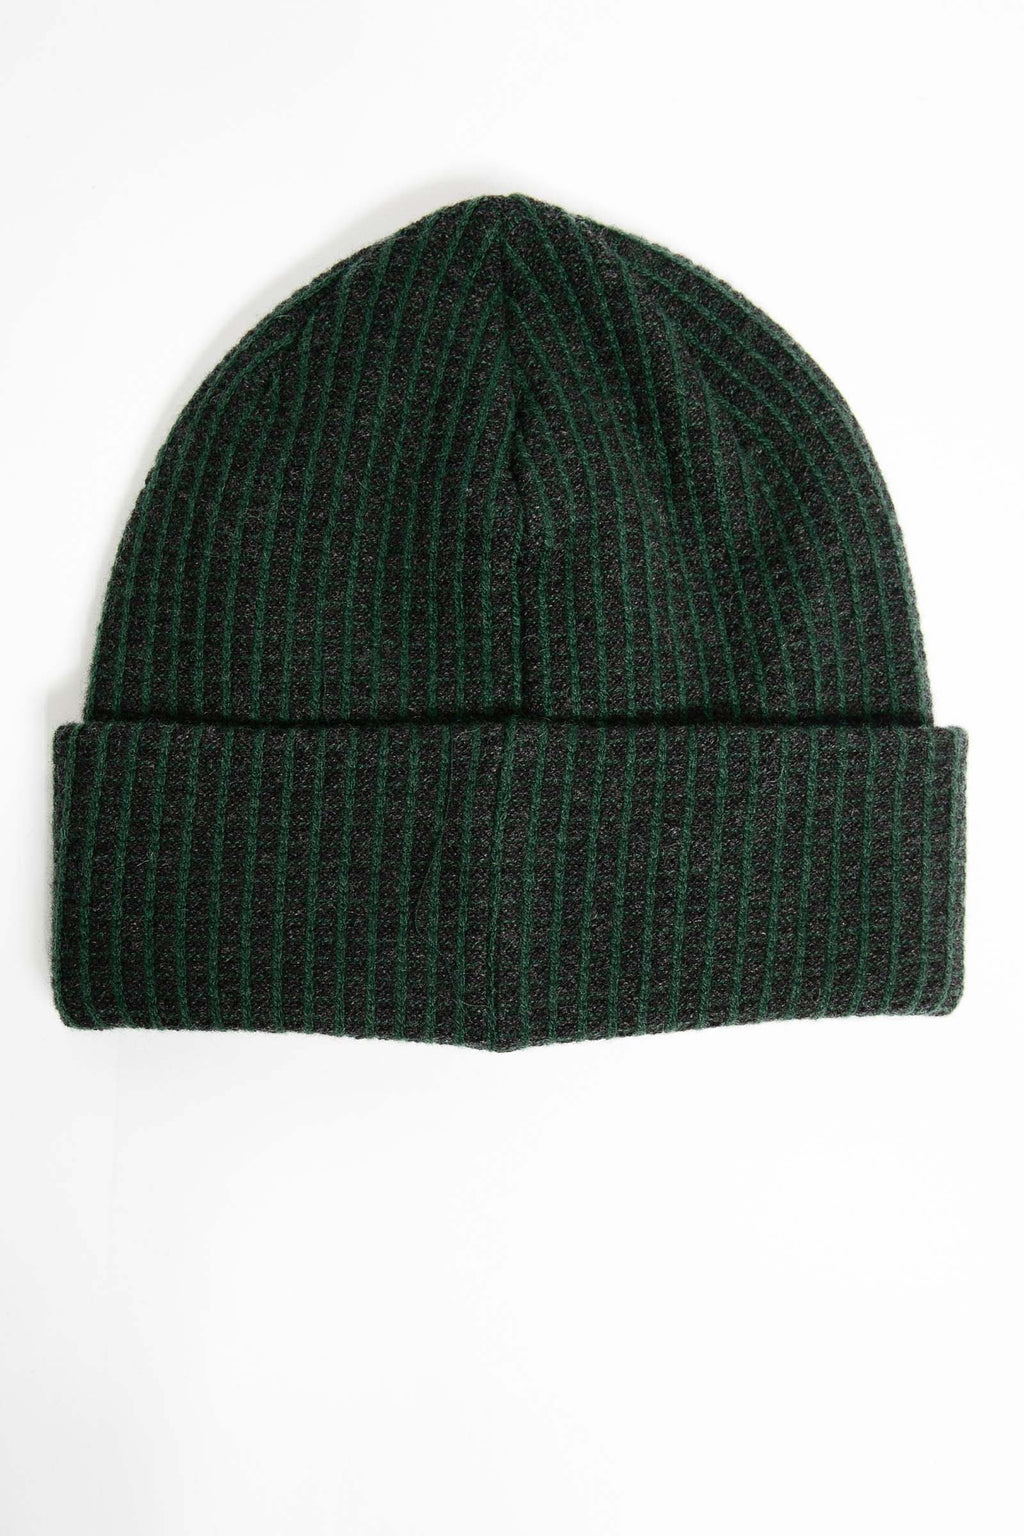 I.S.M. 'Security Officer' Green Cashmere Beanie